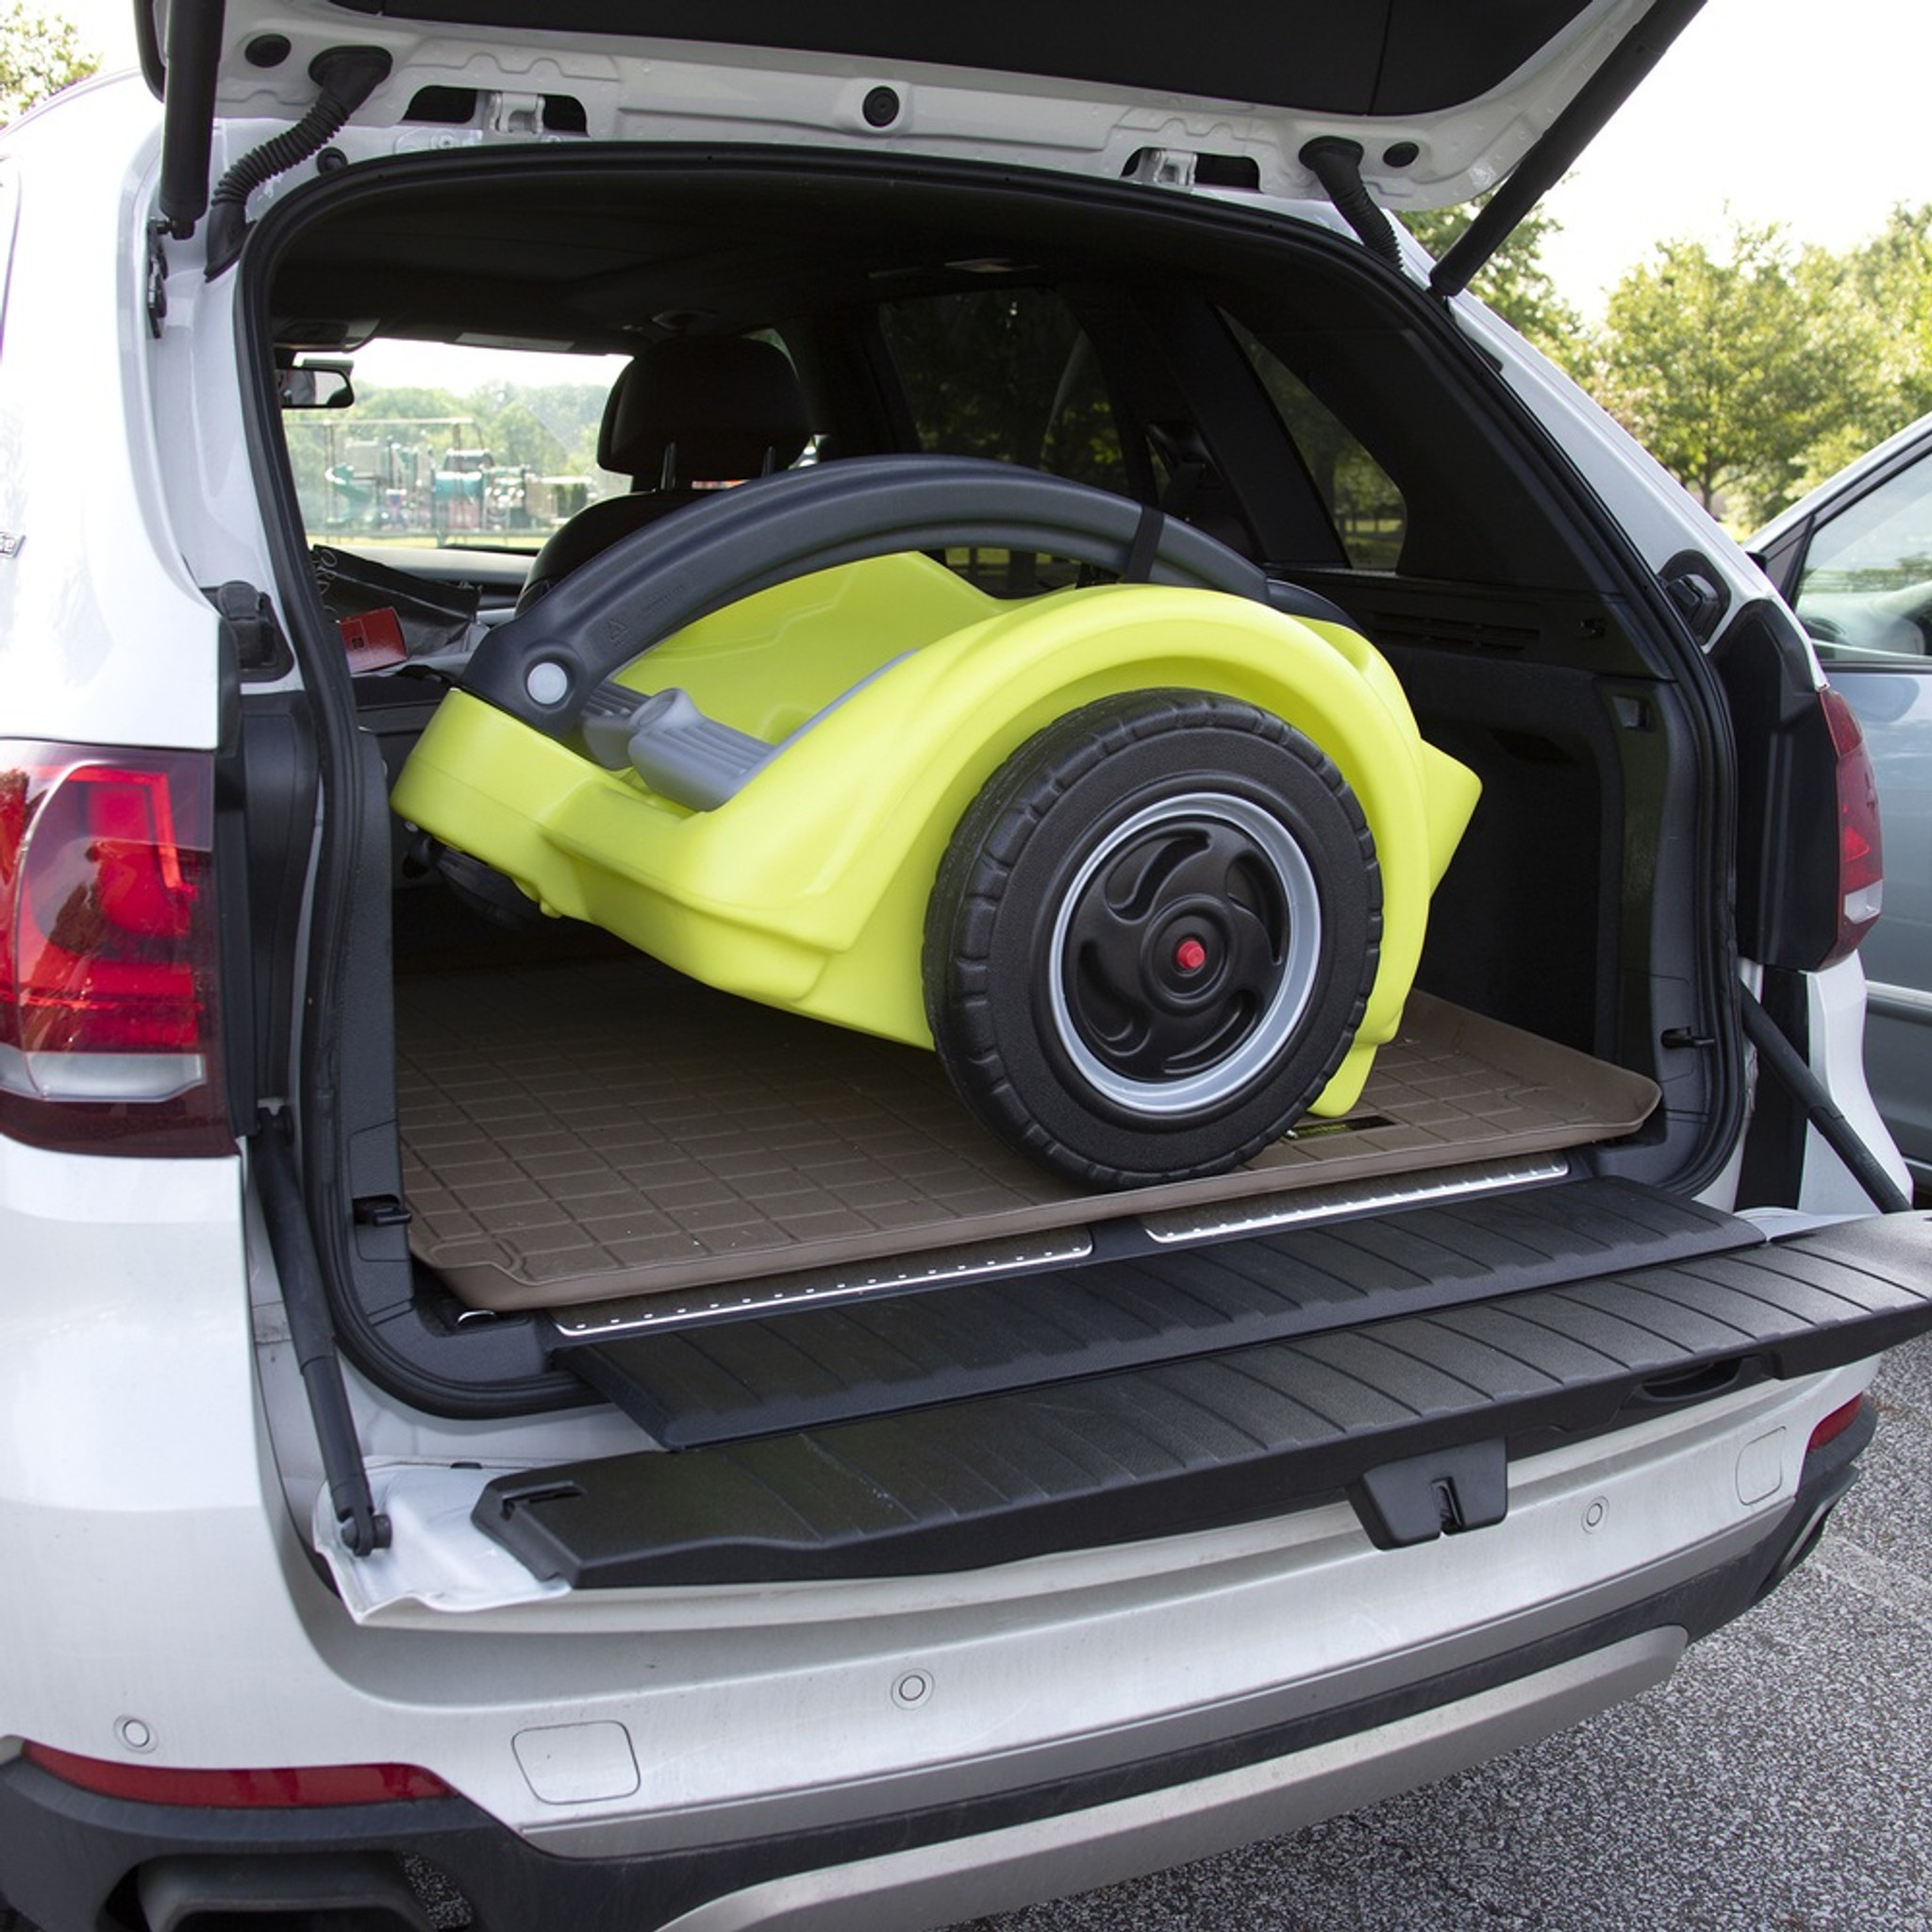 Trail Master 2 Seat Wagon Is Compact Enough To Fit In The Trunk Of Most